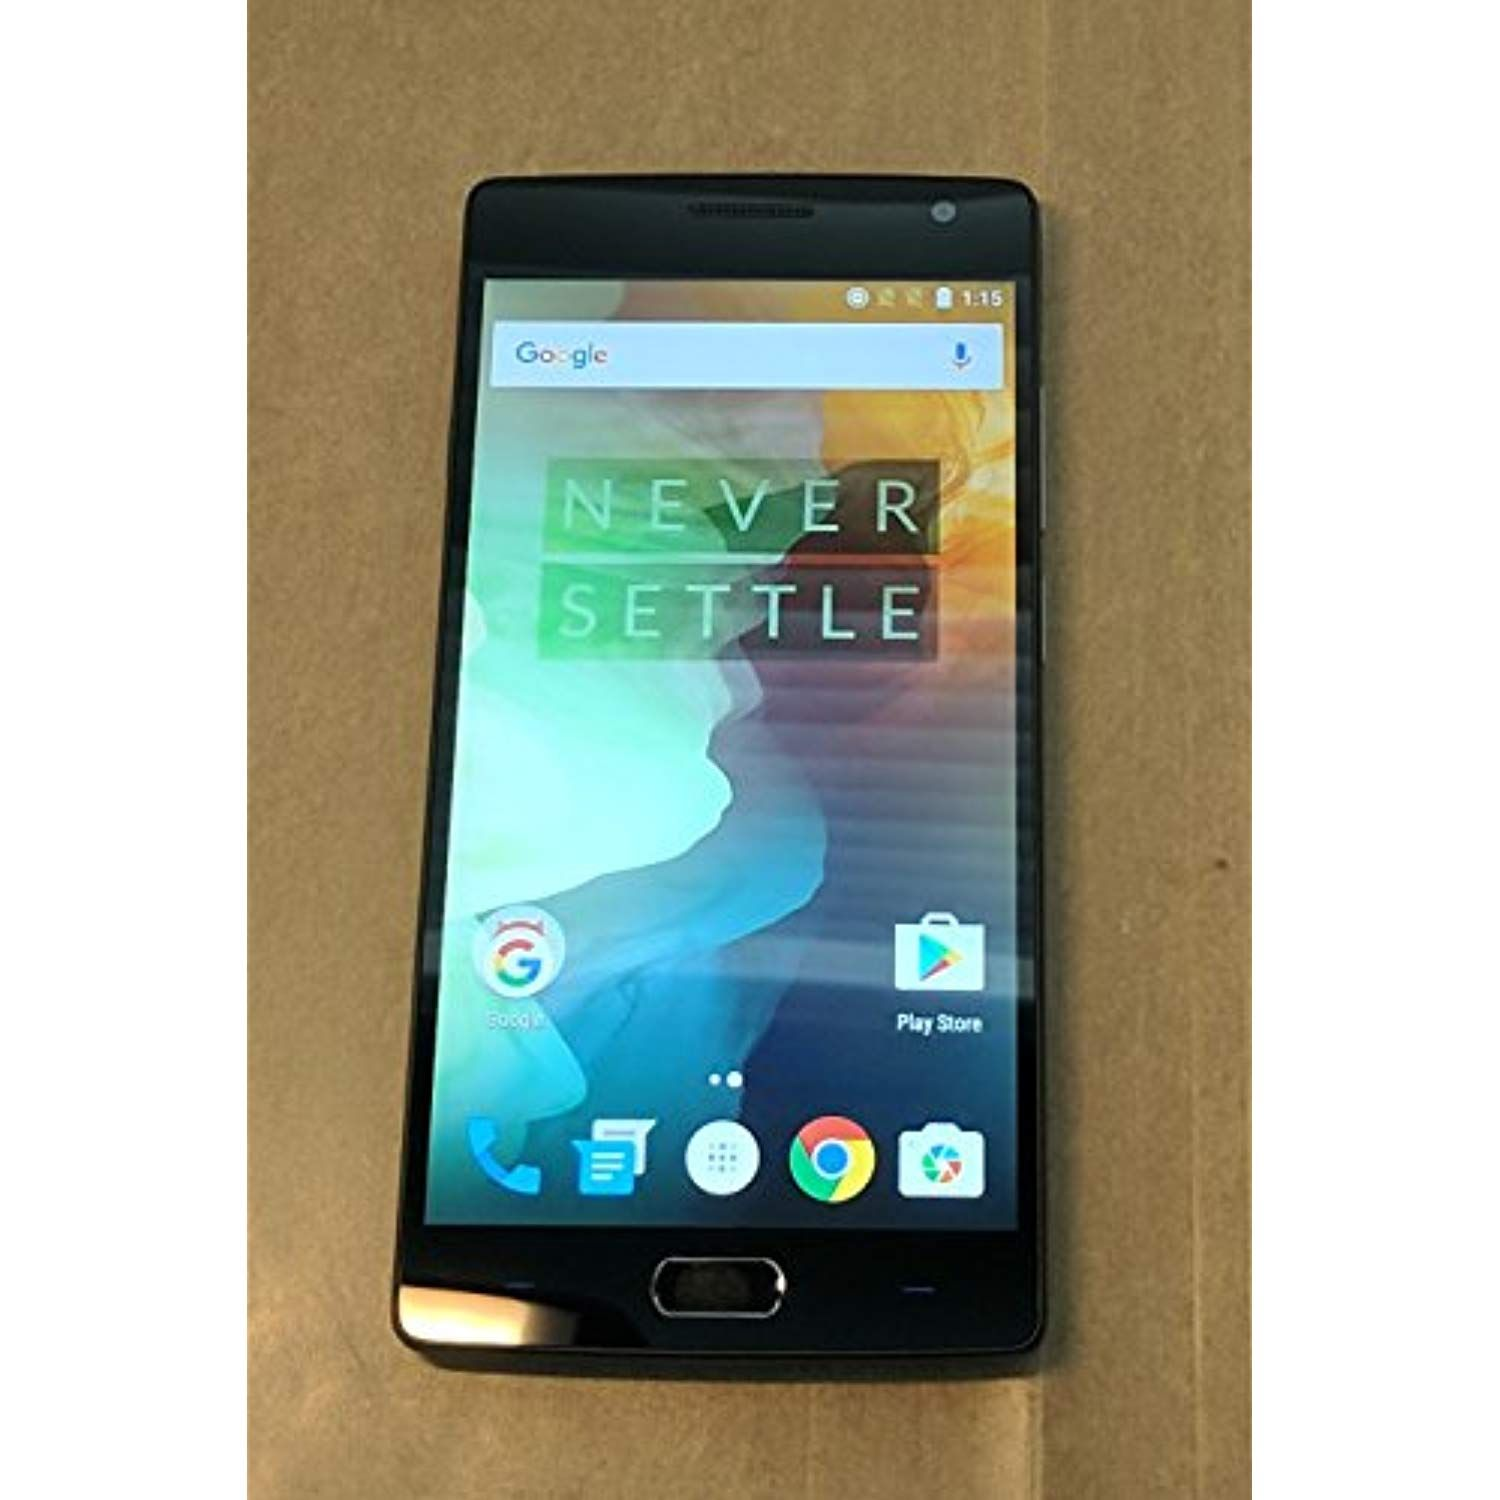 Oneplus 2 factory unlocked a2005 4g smartphone android 5